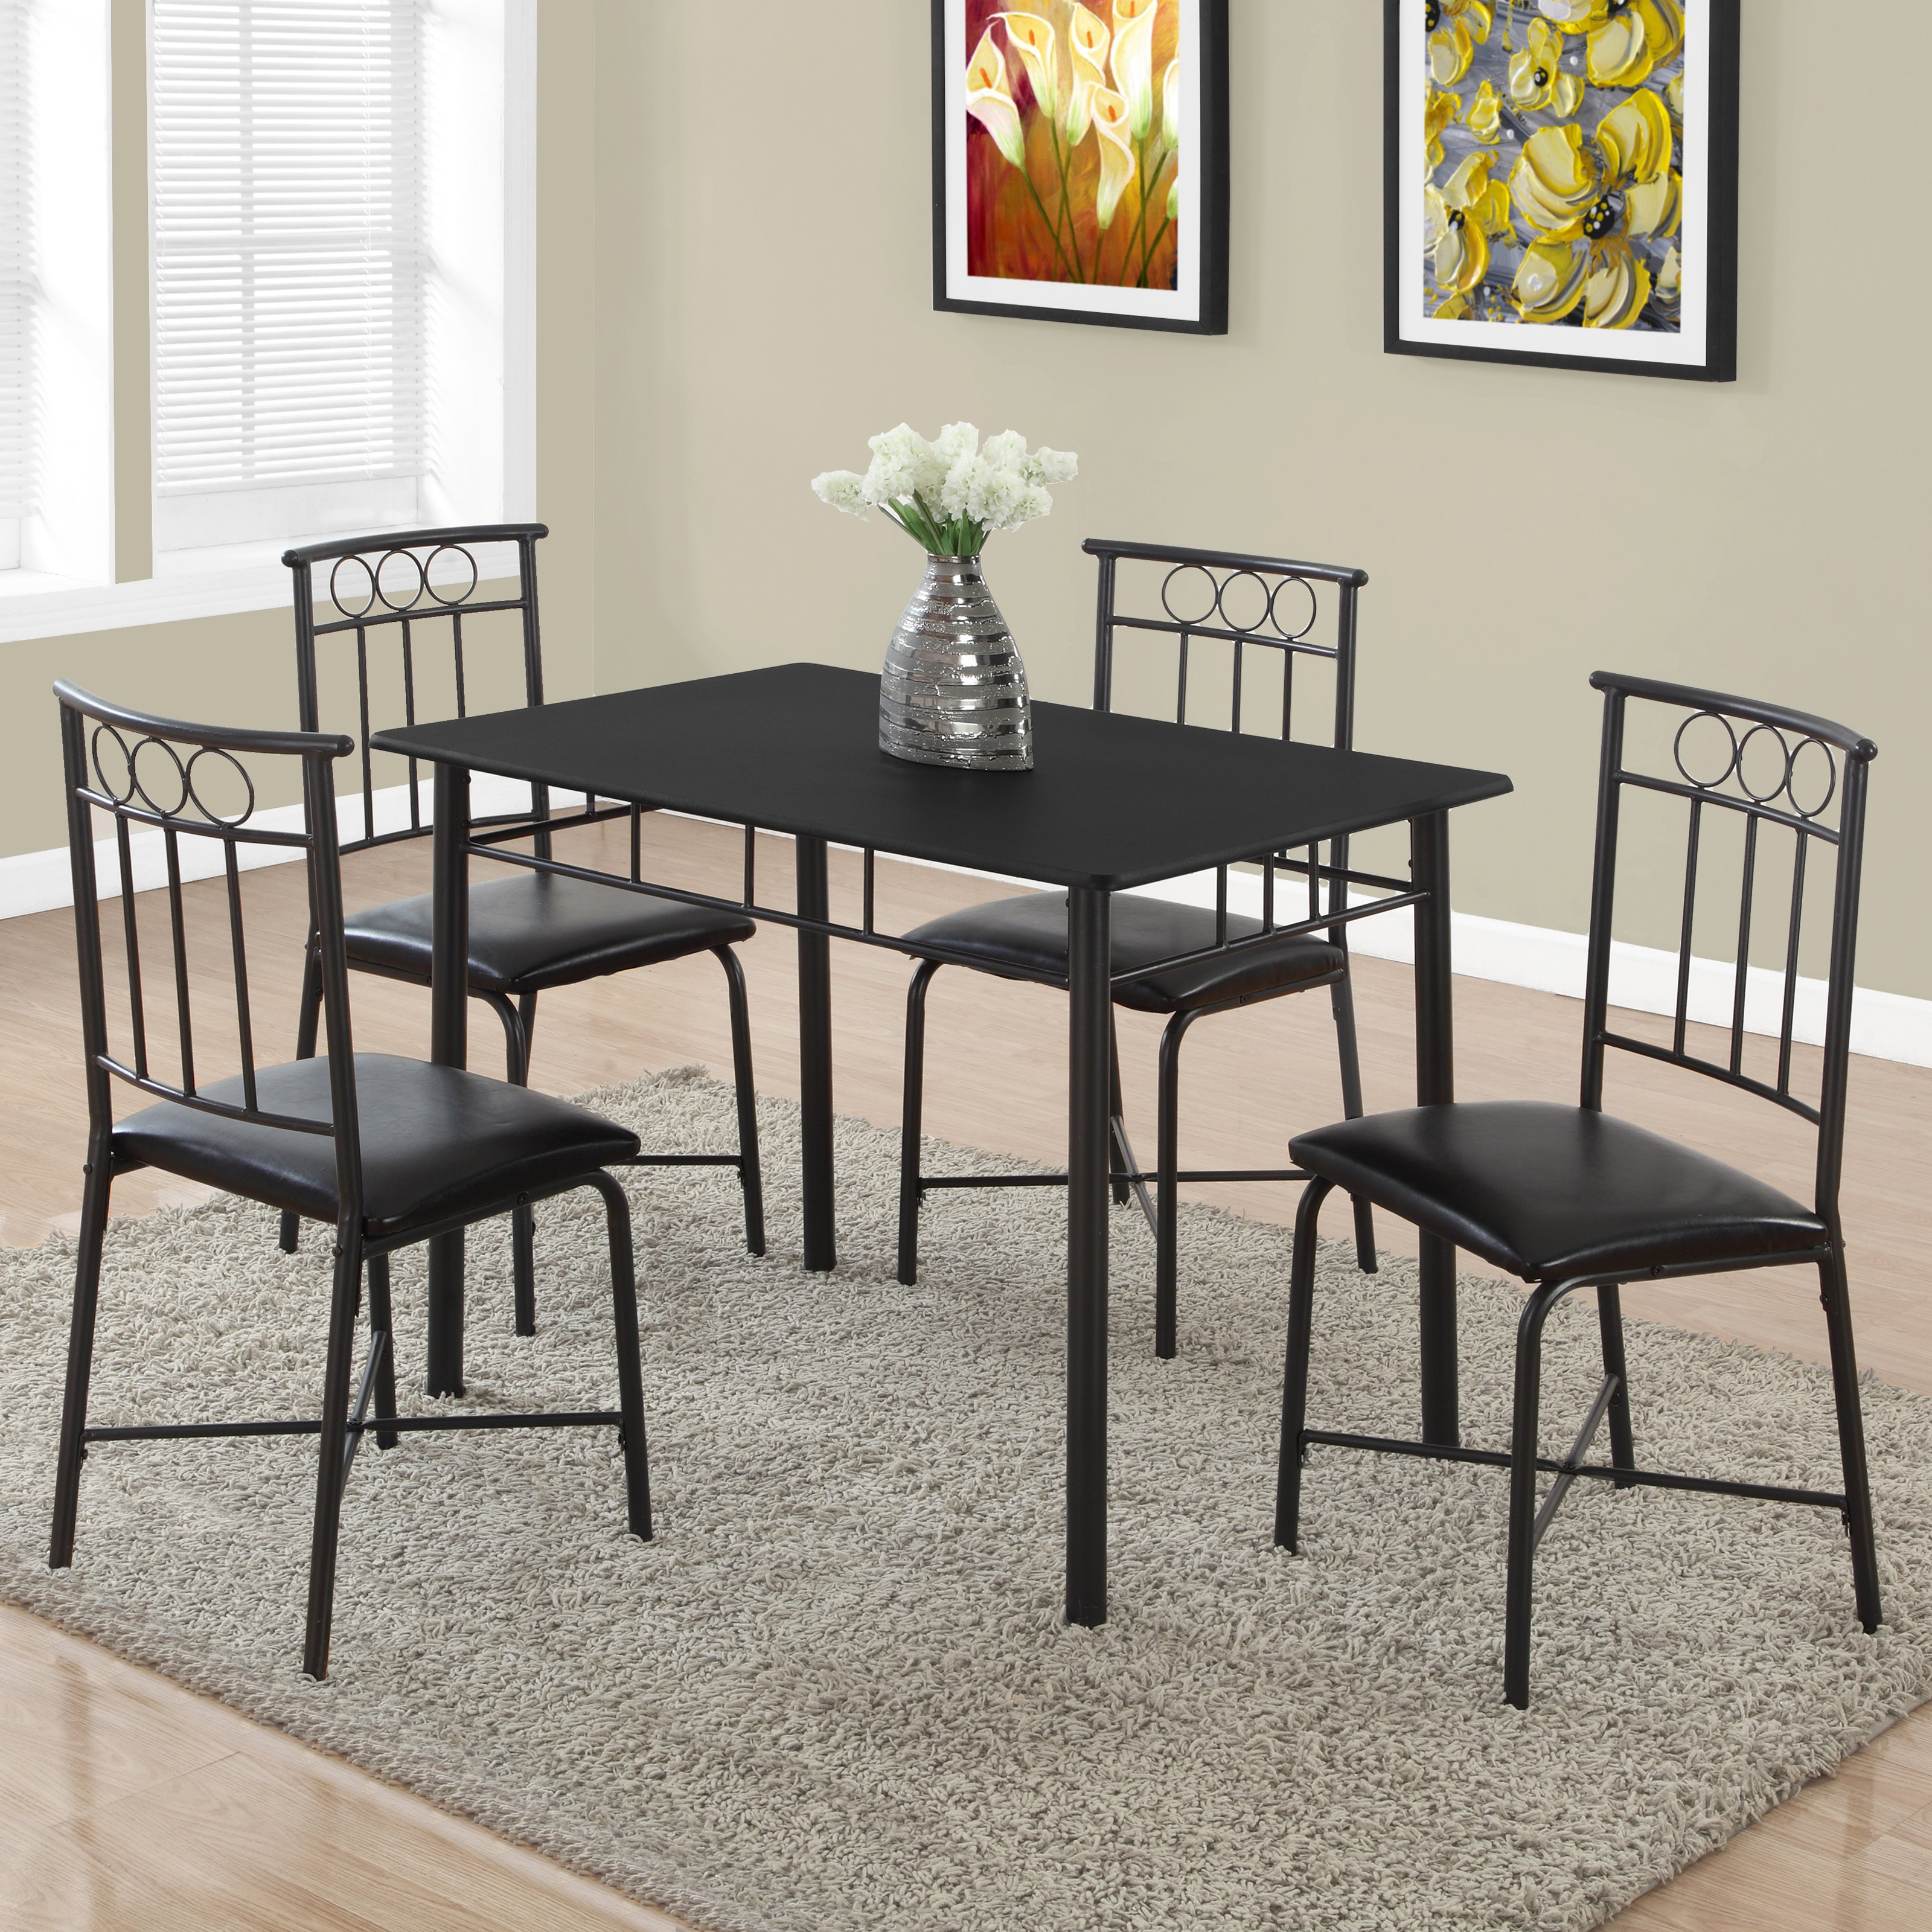 Genial Monarch Dining Set 5Pcs Set / Black Metal And Top